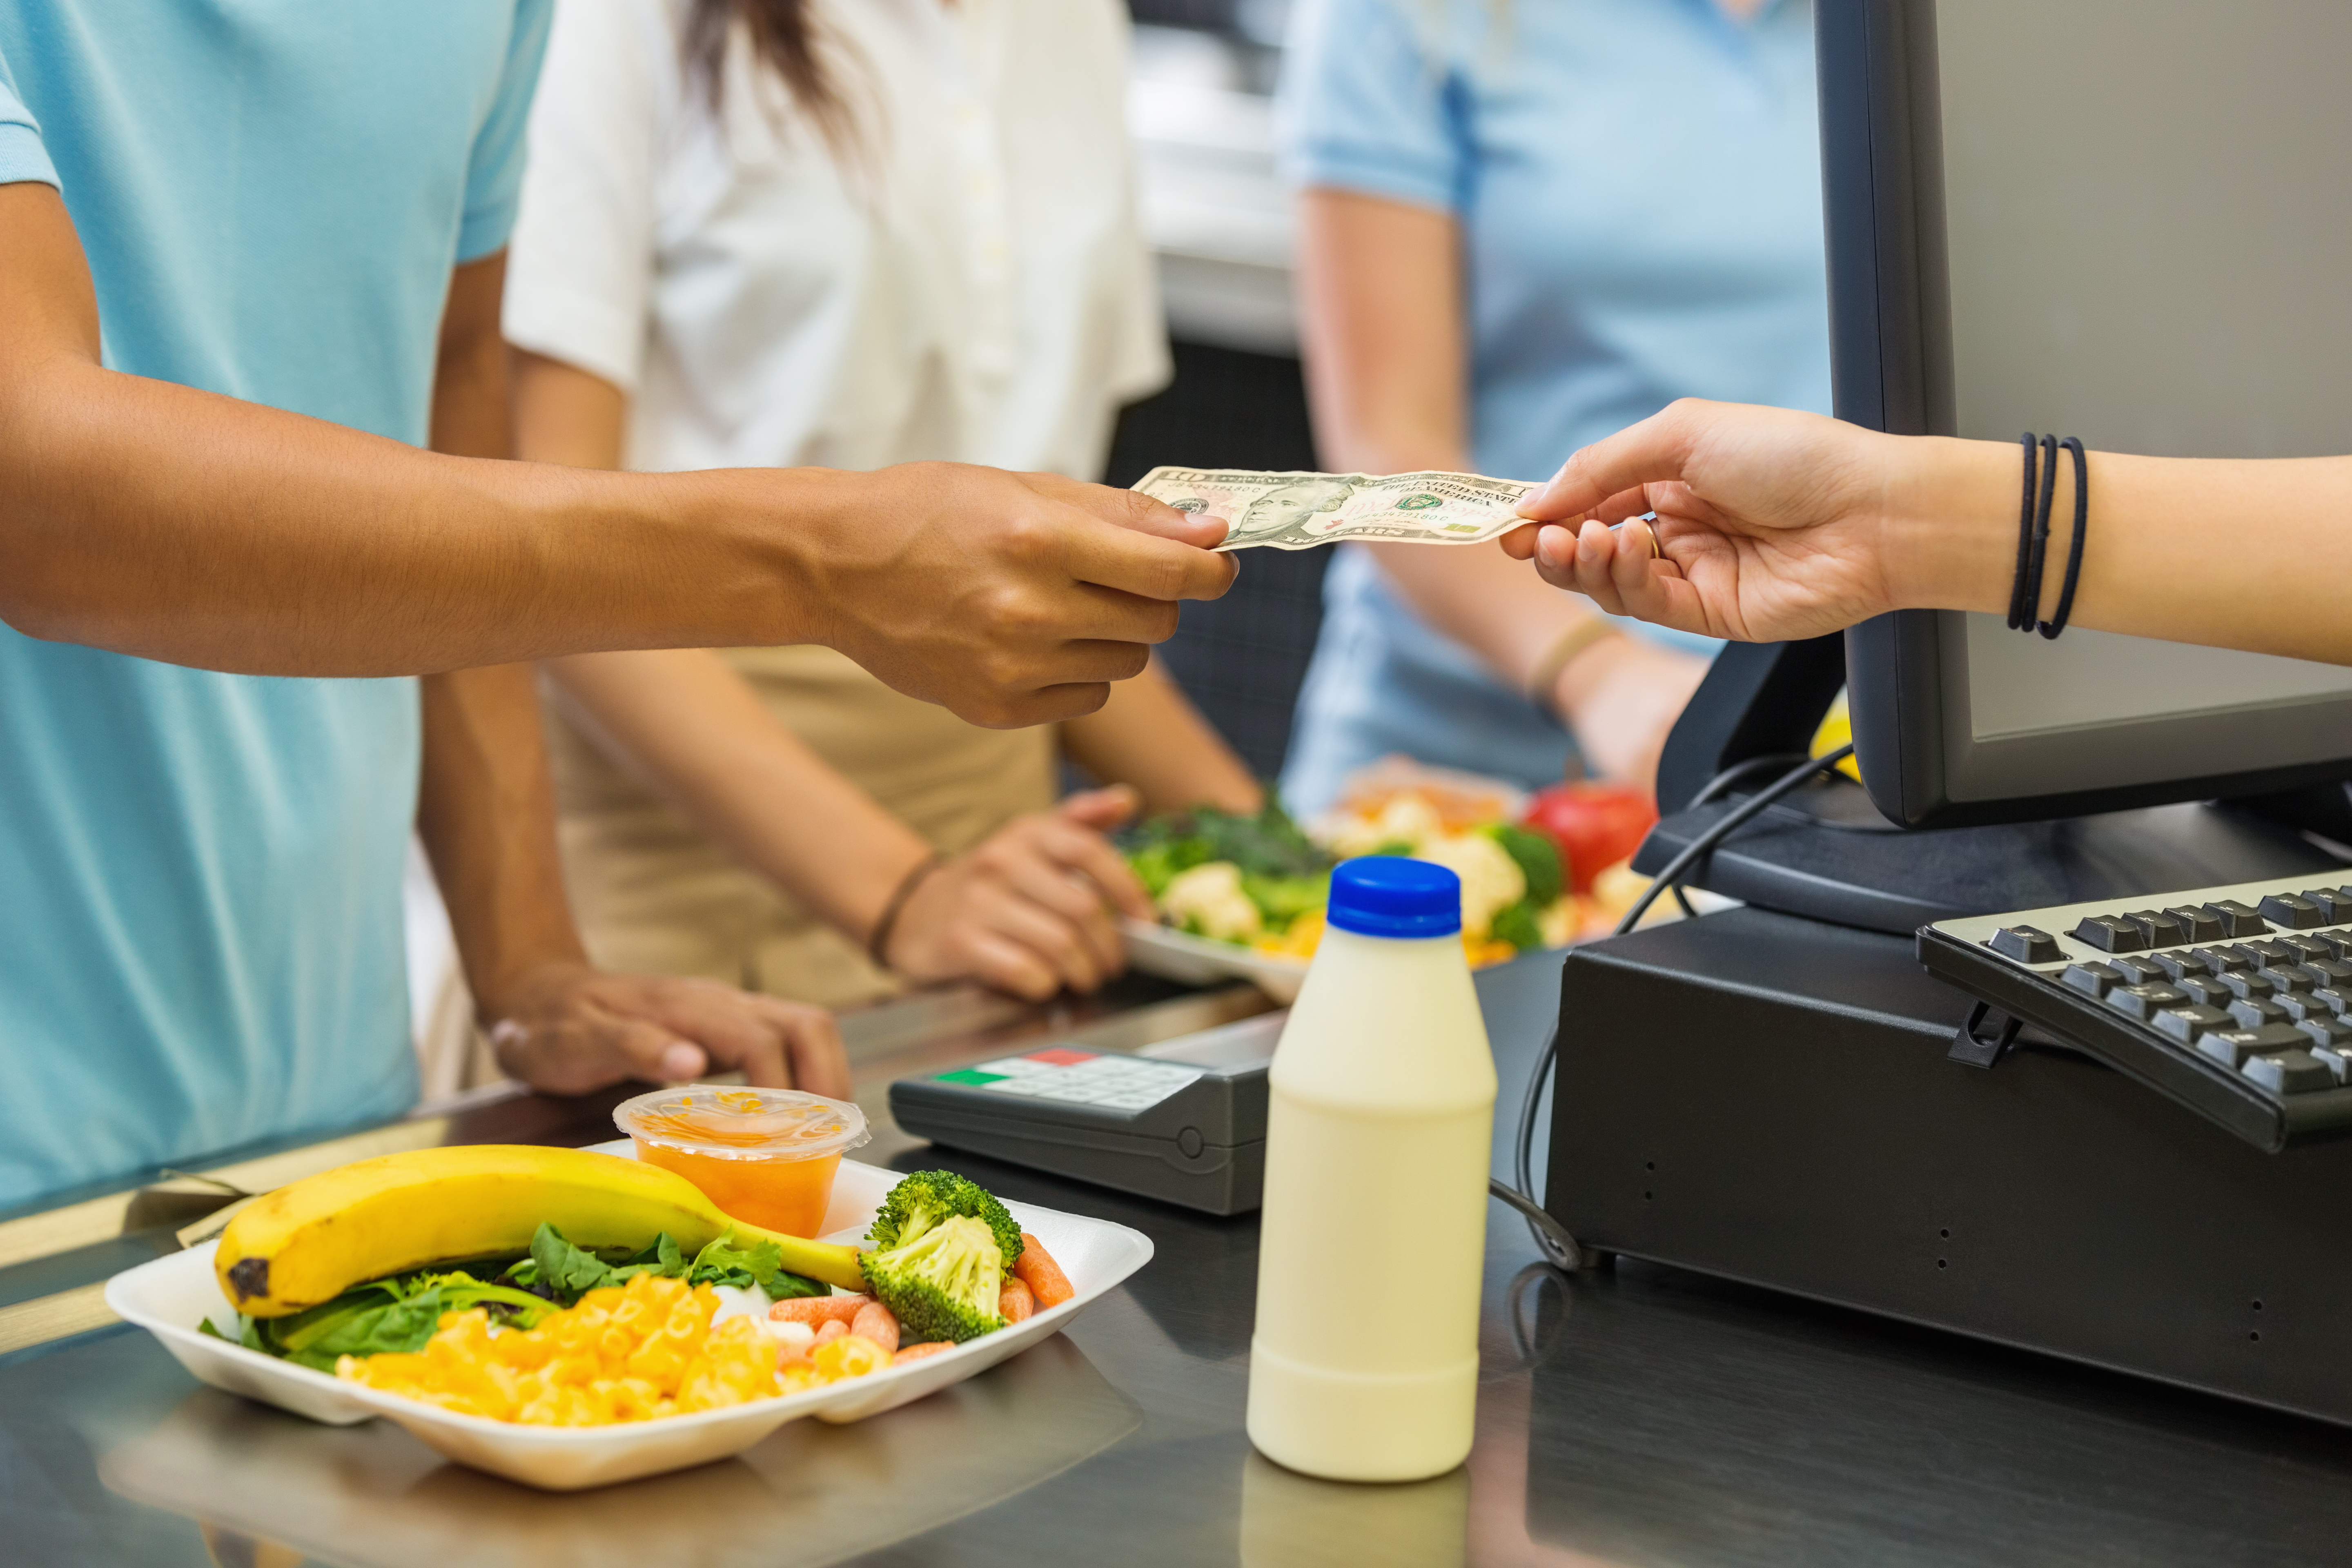 Schools Threatening to Send Kids to Foster Care Over Unpaid Lunch Debts Announce Student Meals Will Be Free